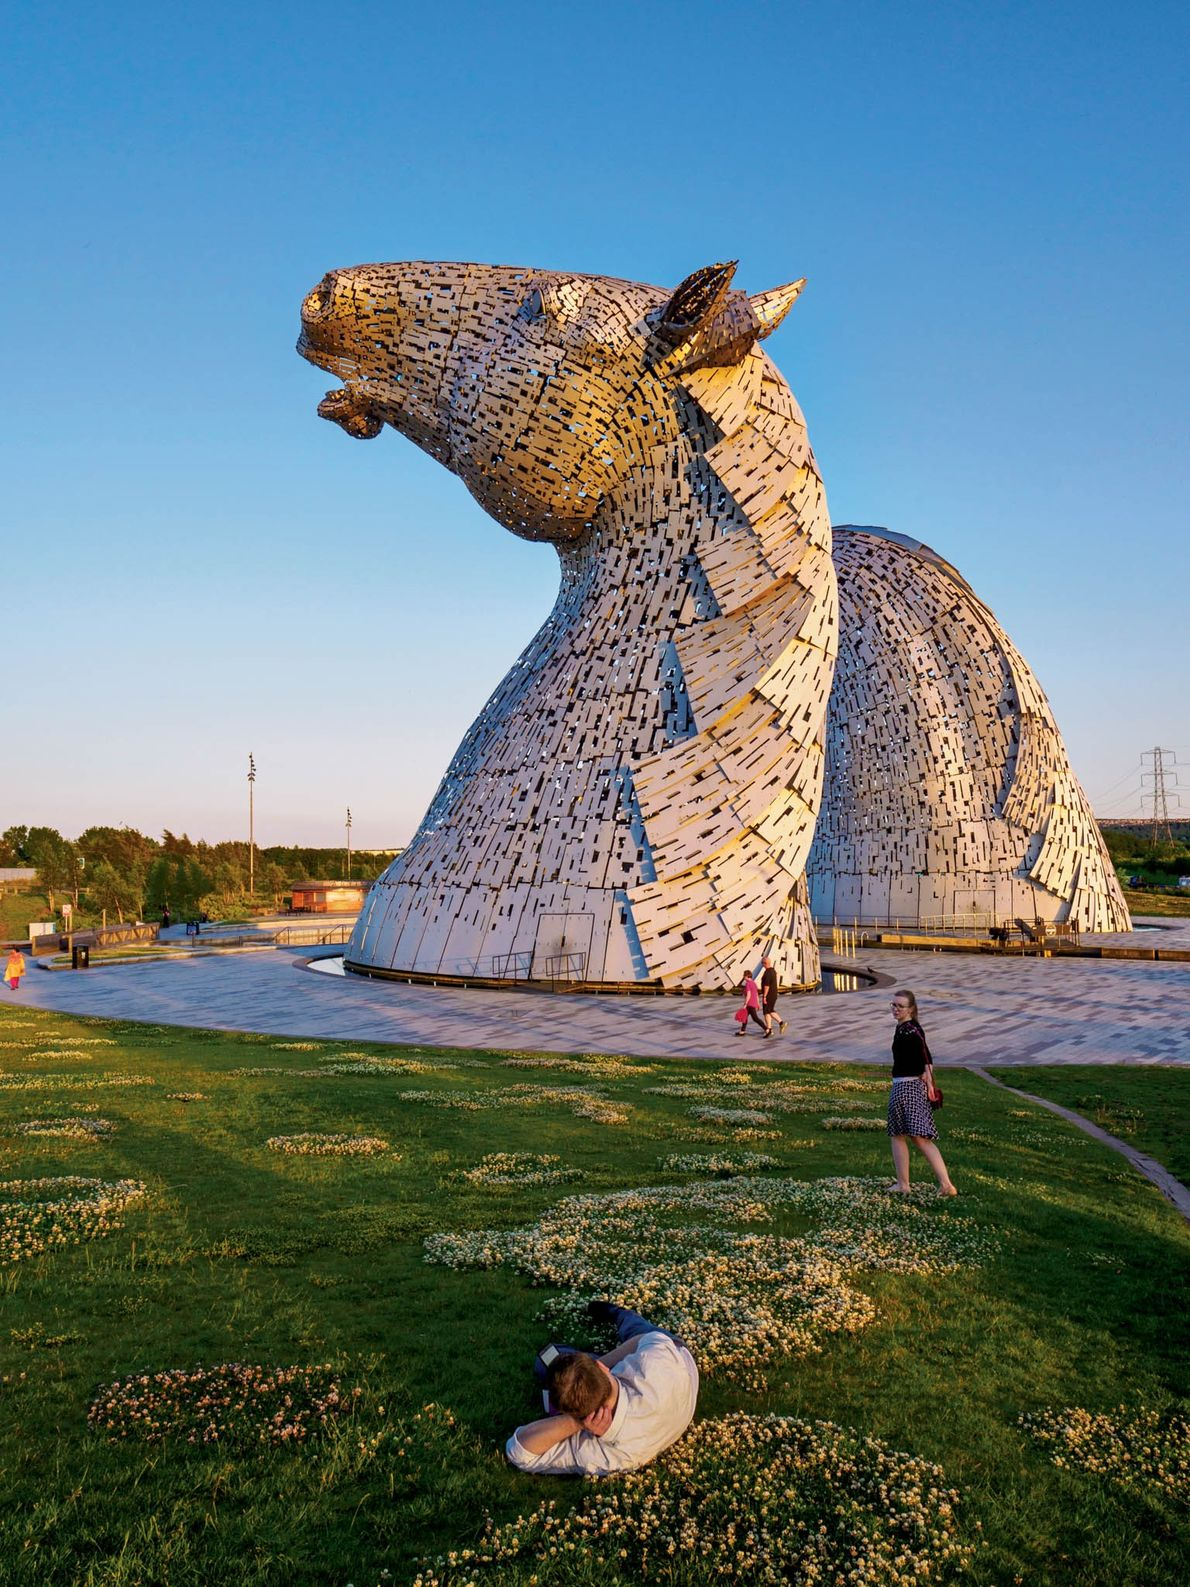 Sculptor, Andy Scott, laboured eight years on 'The Kelpies', 30-metre (98-foot) tall, stainless-steel horse heads that ...